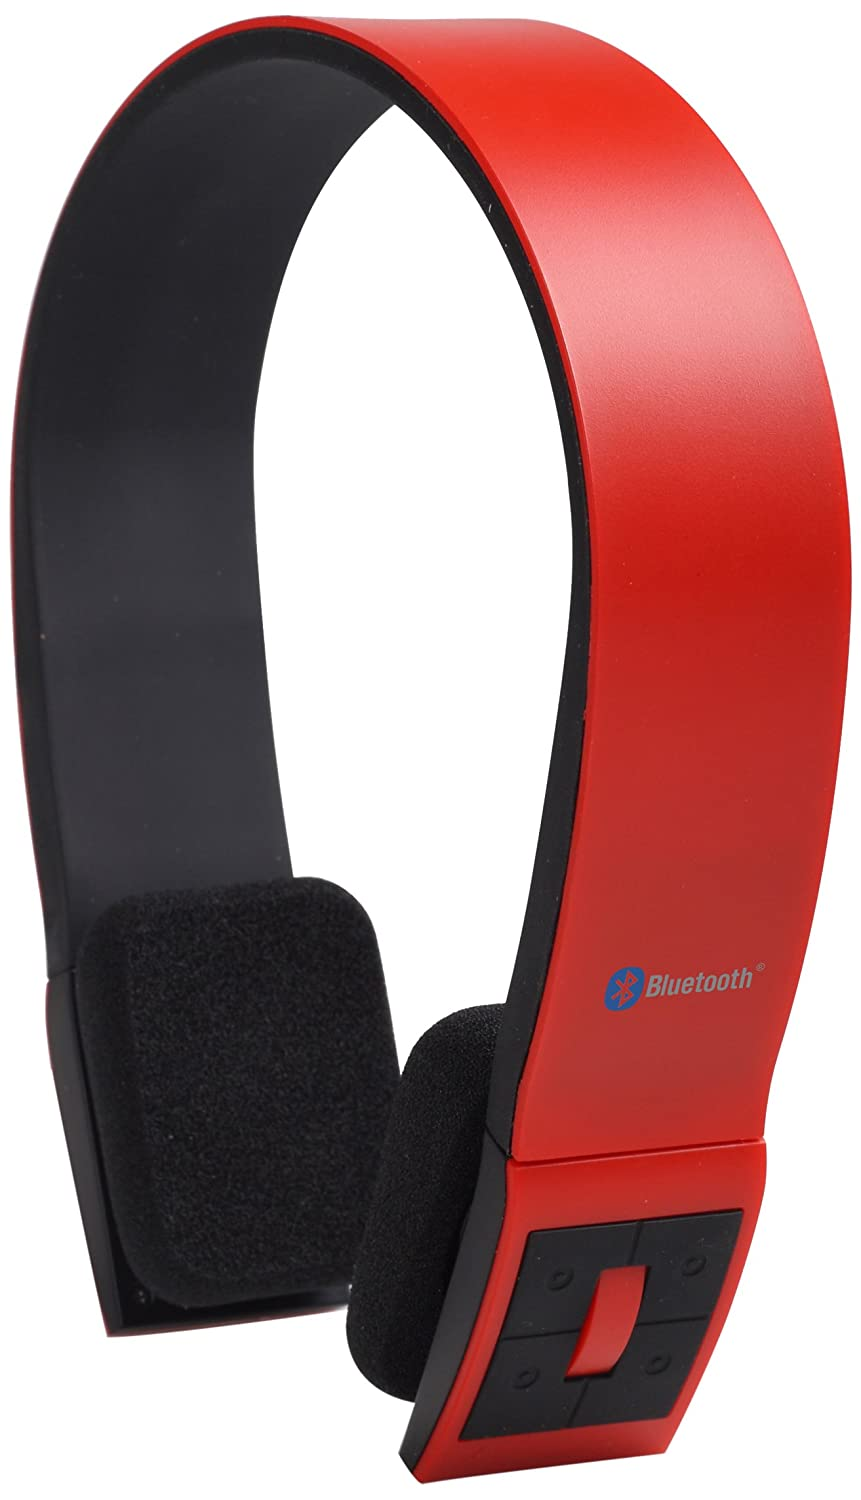 AudioSonic HP-1642 - Auriculares de diadema abiertos (Bluetooth, USB), rojo: Amazon.es: Electrónica